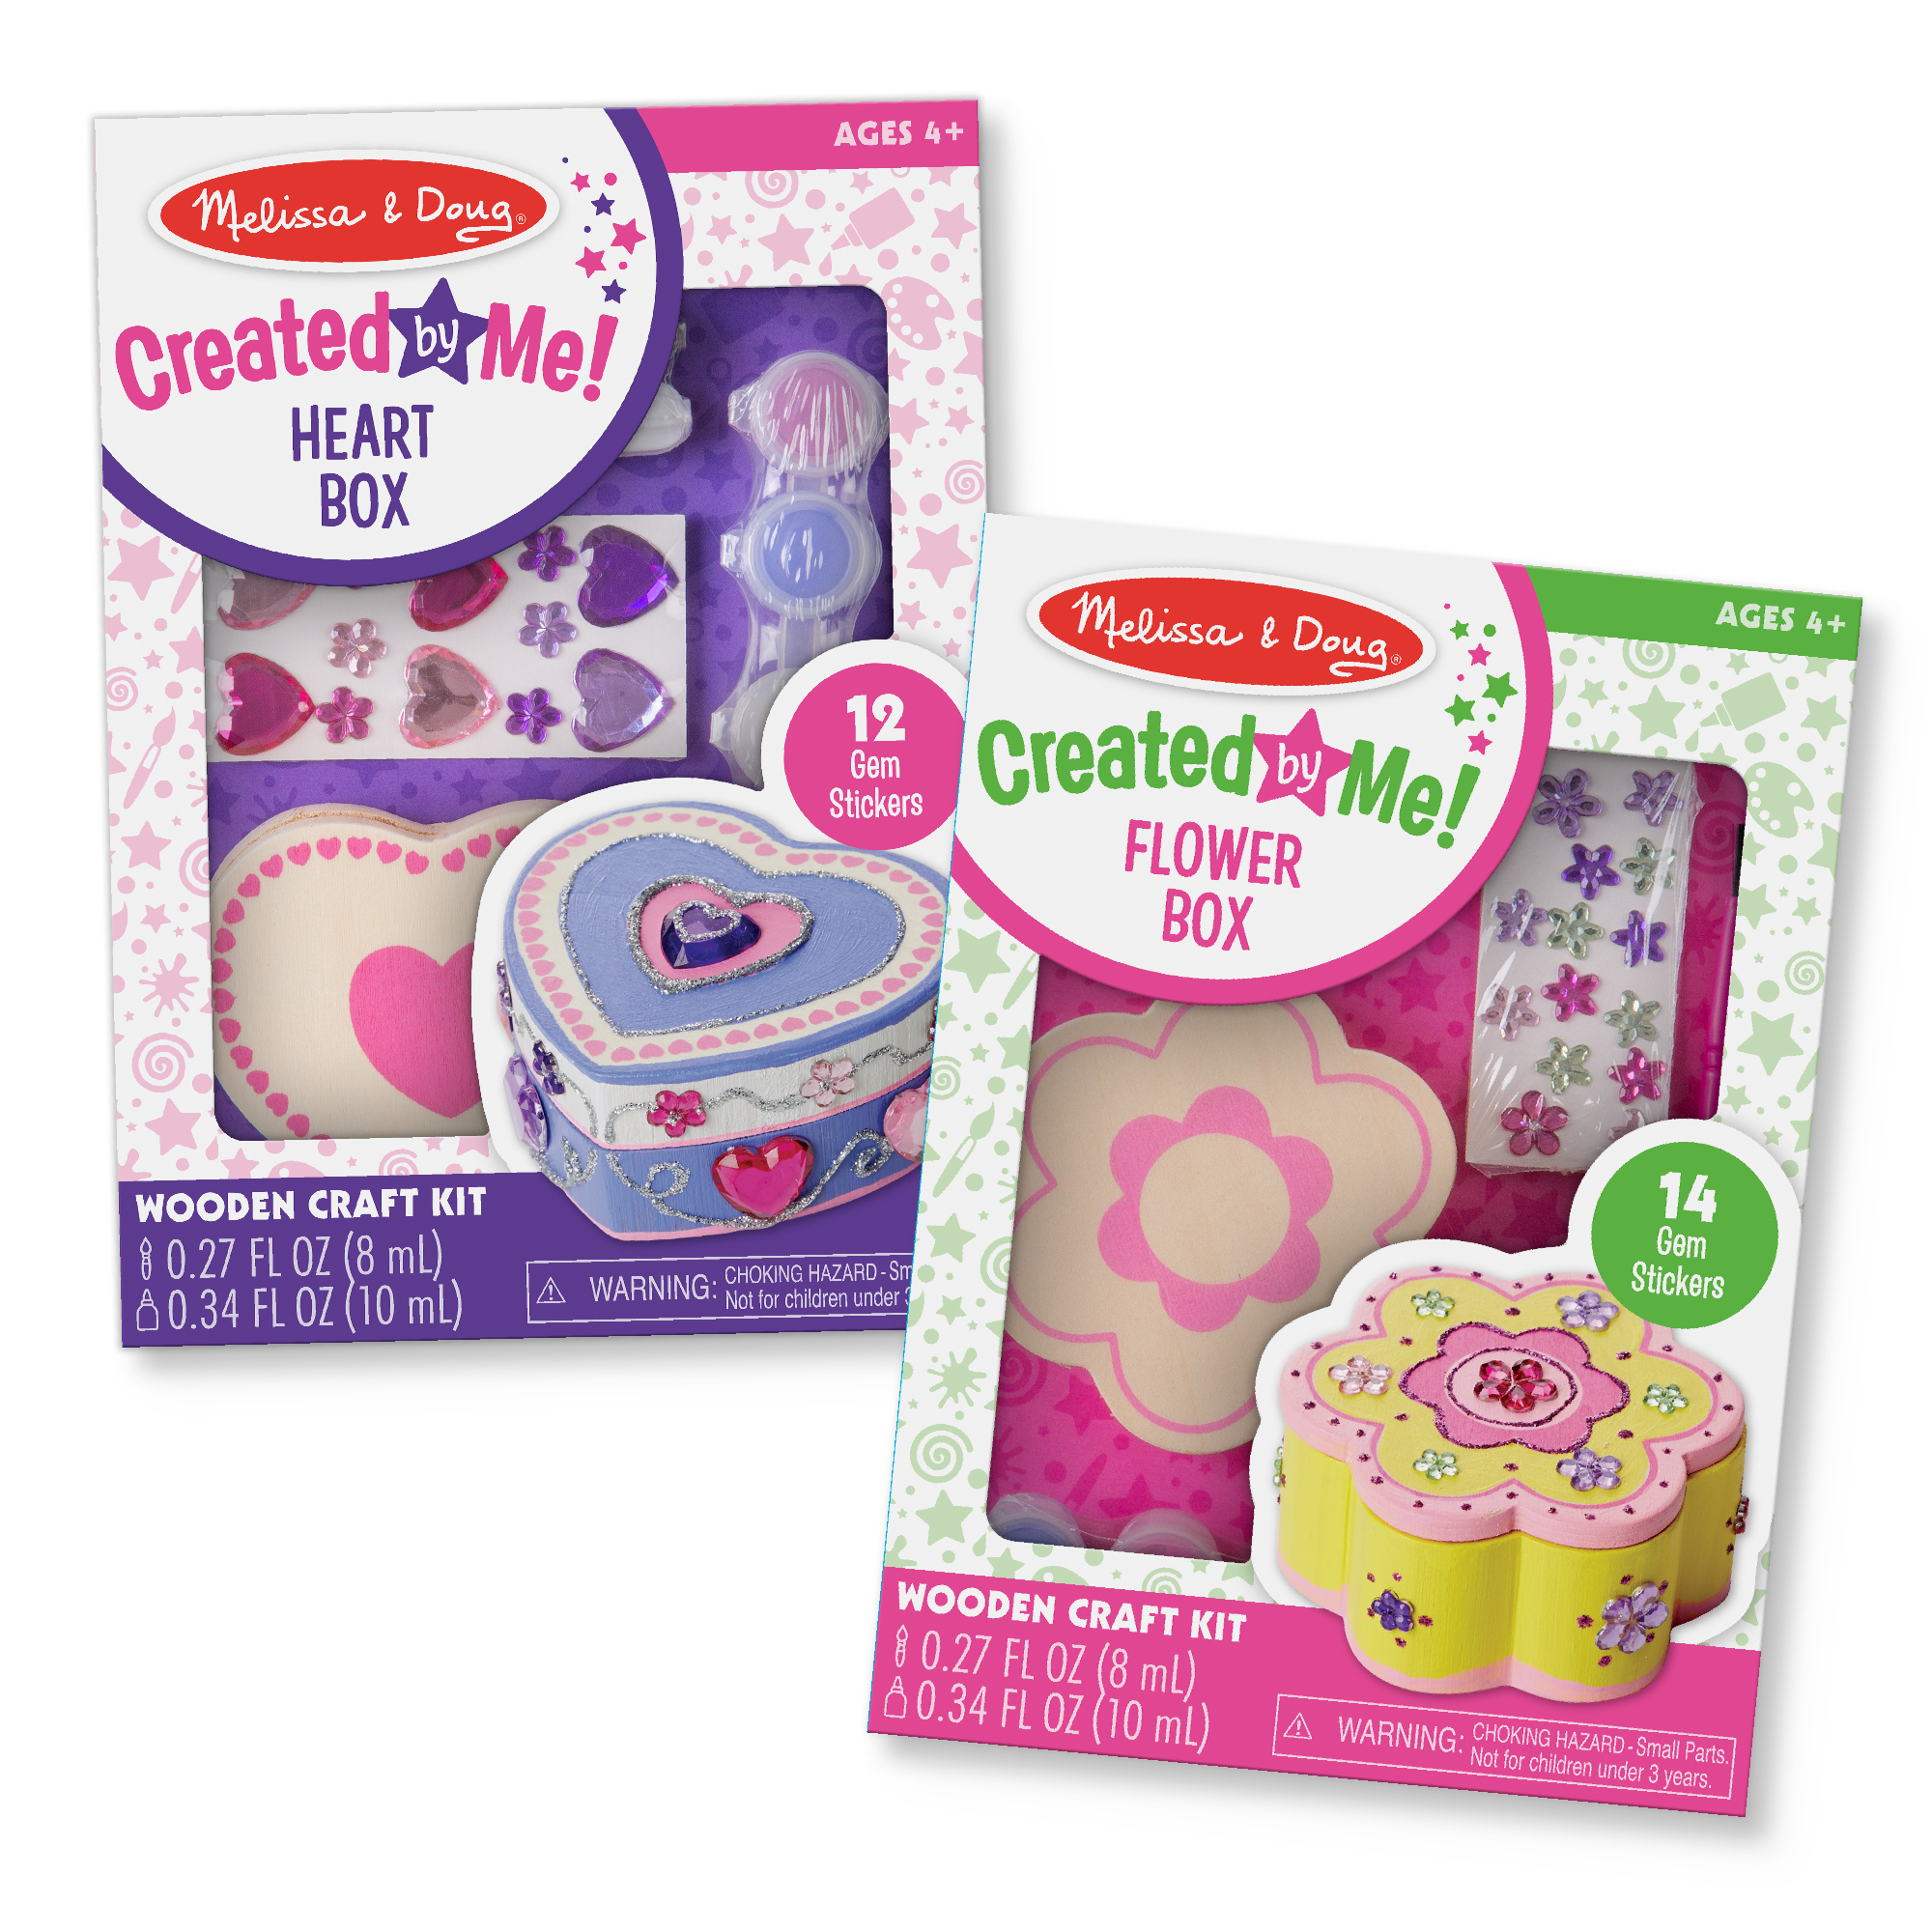 Melissa & Doug Created by Me! Paint & Decorate Your Own Wooden Trinket Box Craft Kit For Kids 2 Pack – Heart Box, Flower Box